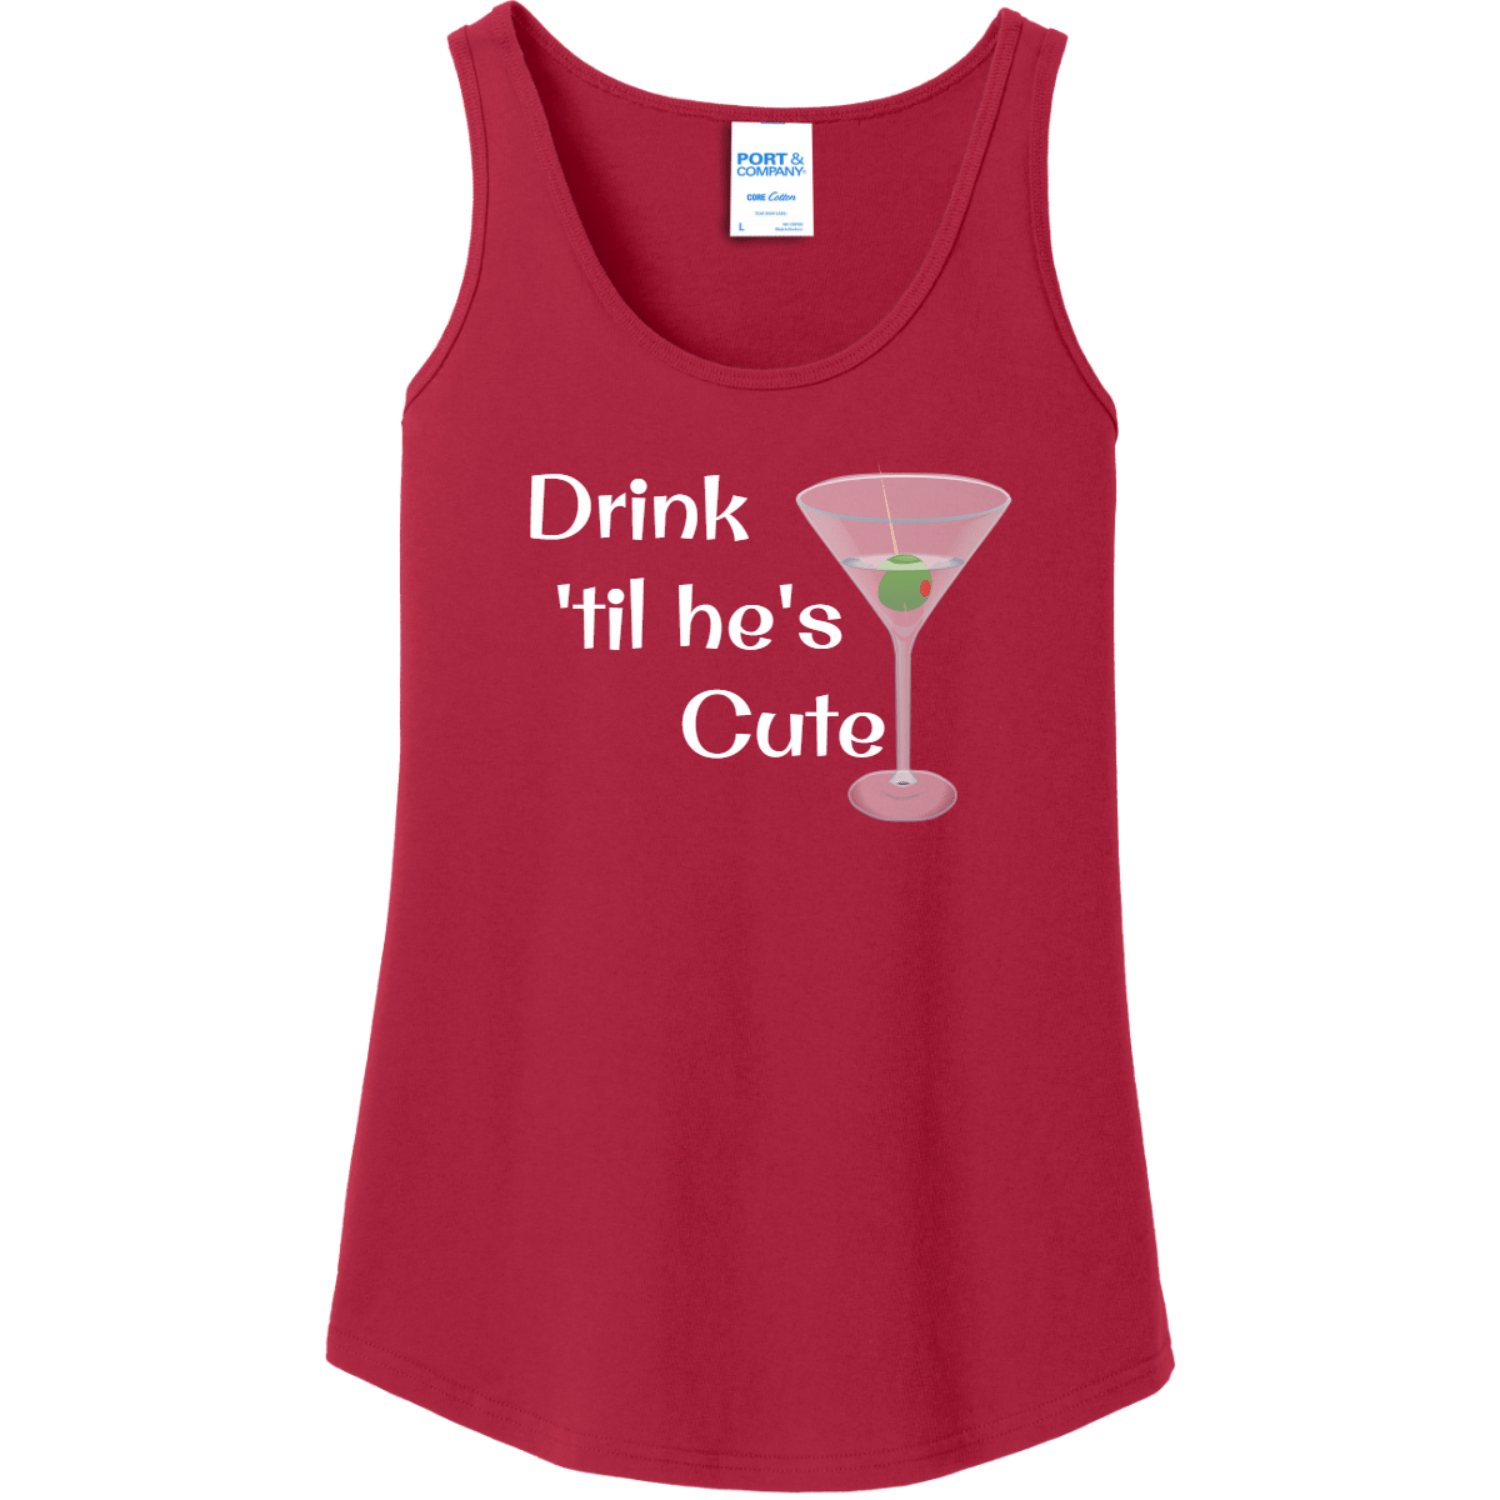 Drink 'Til He's Cute Tank Top for Women Red Port And Company Ladies Tank Top LPC54TT